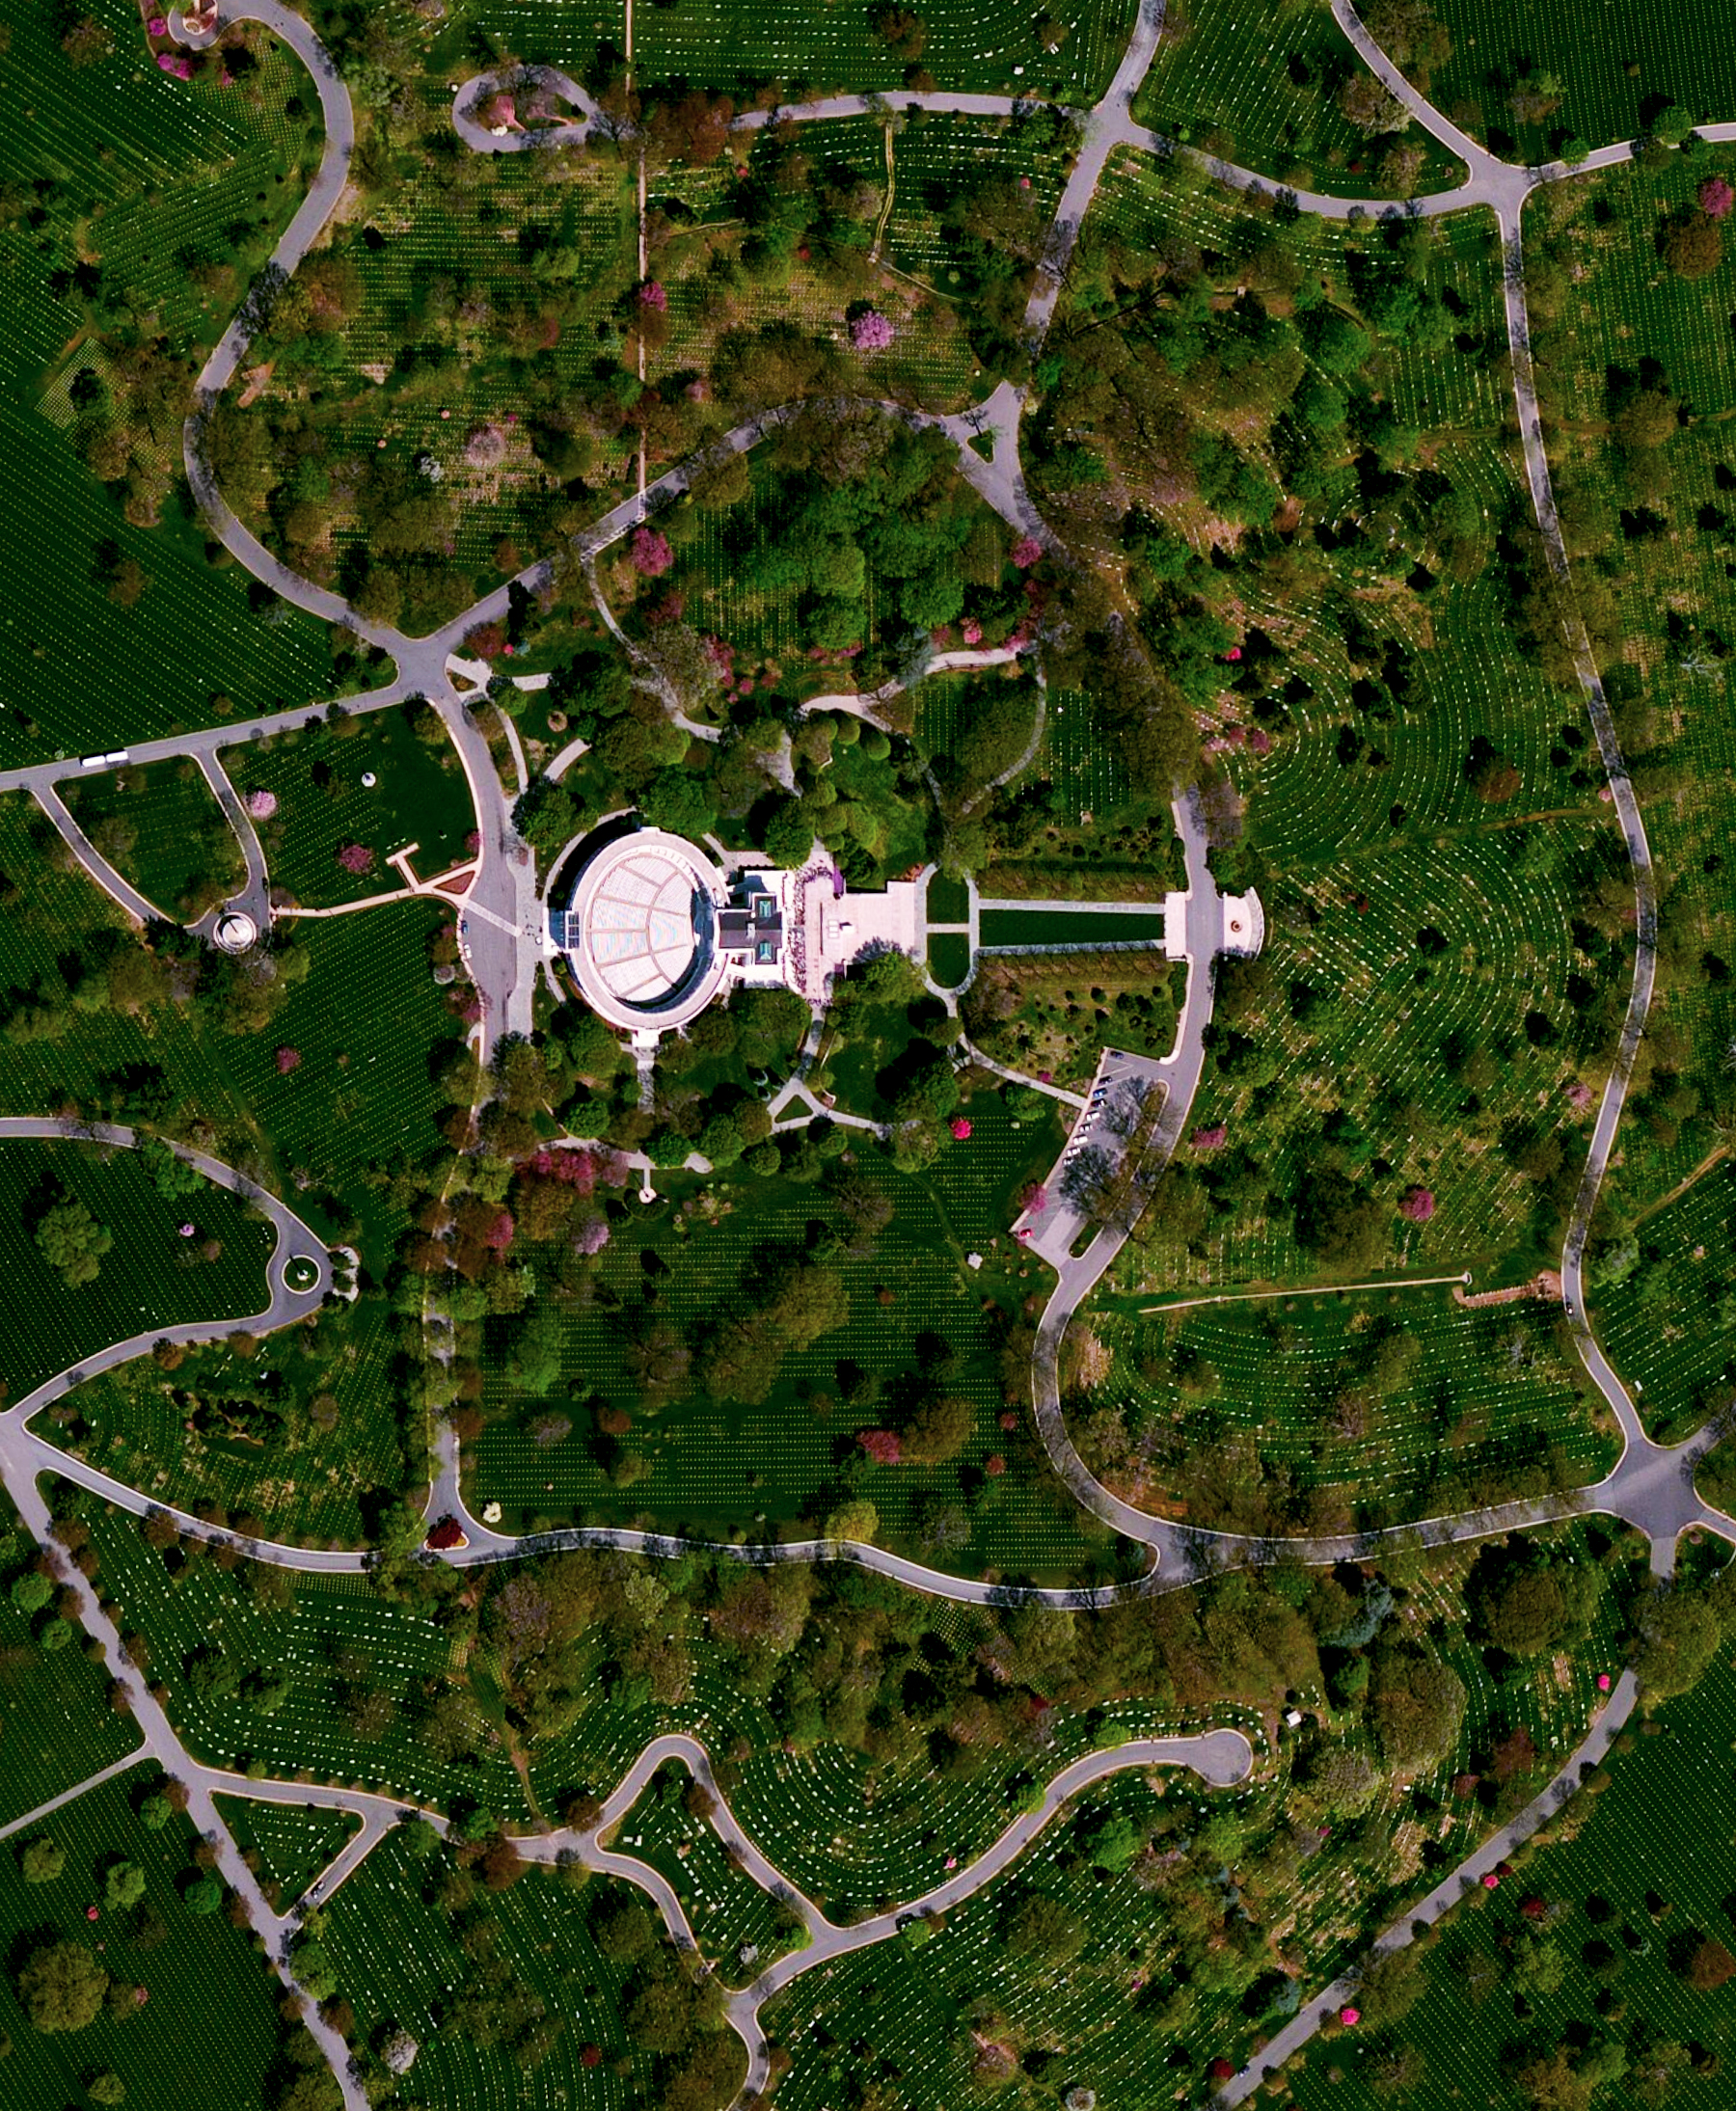 5/30/2016   Arlington National Cemetery   Arlington County, Virginia  38°52′48″N 77°04′12″W    In honor of Memorial Day in the United States, we've selected an Overview of Arlington National Cemetery outside of Washington, D.C. Since the American Civil War, the 624-acre cemetery has become the final resting place for veterans of the nation's conflicts. The structure seen here is the Arlington Memorial Amphitheater that also contains the Tomb of the Unknown Soldier.